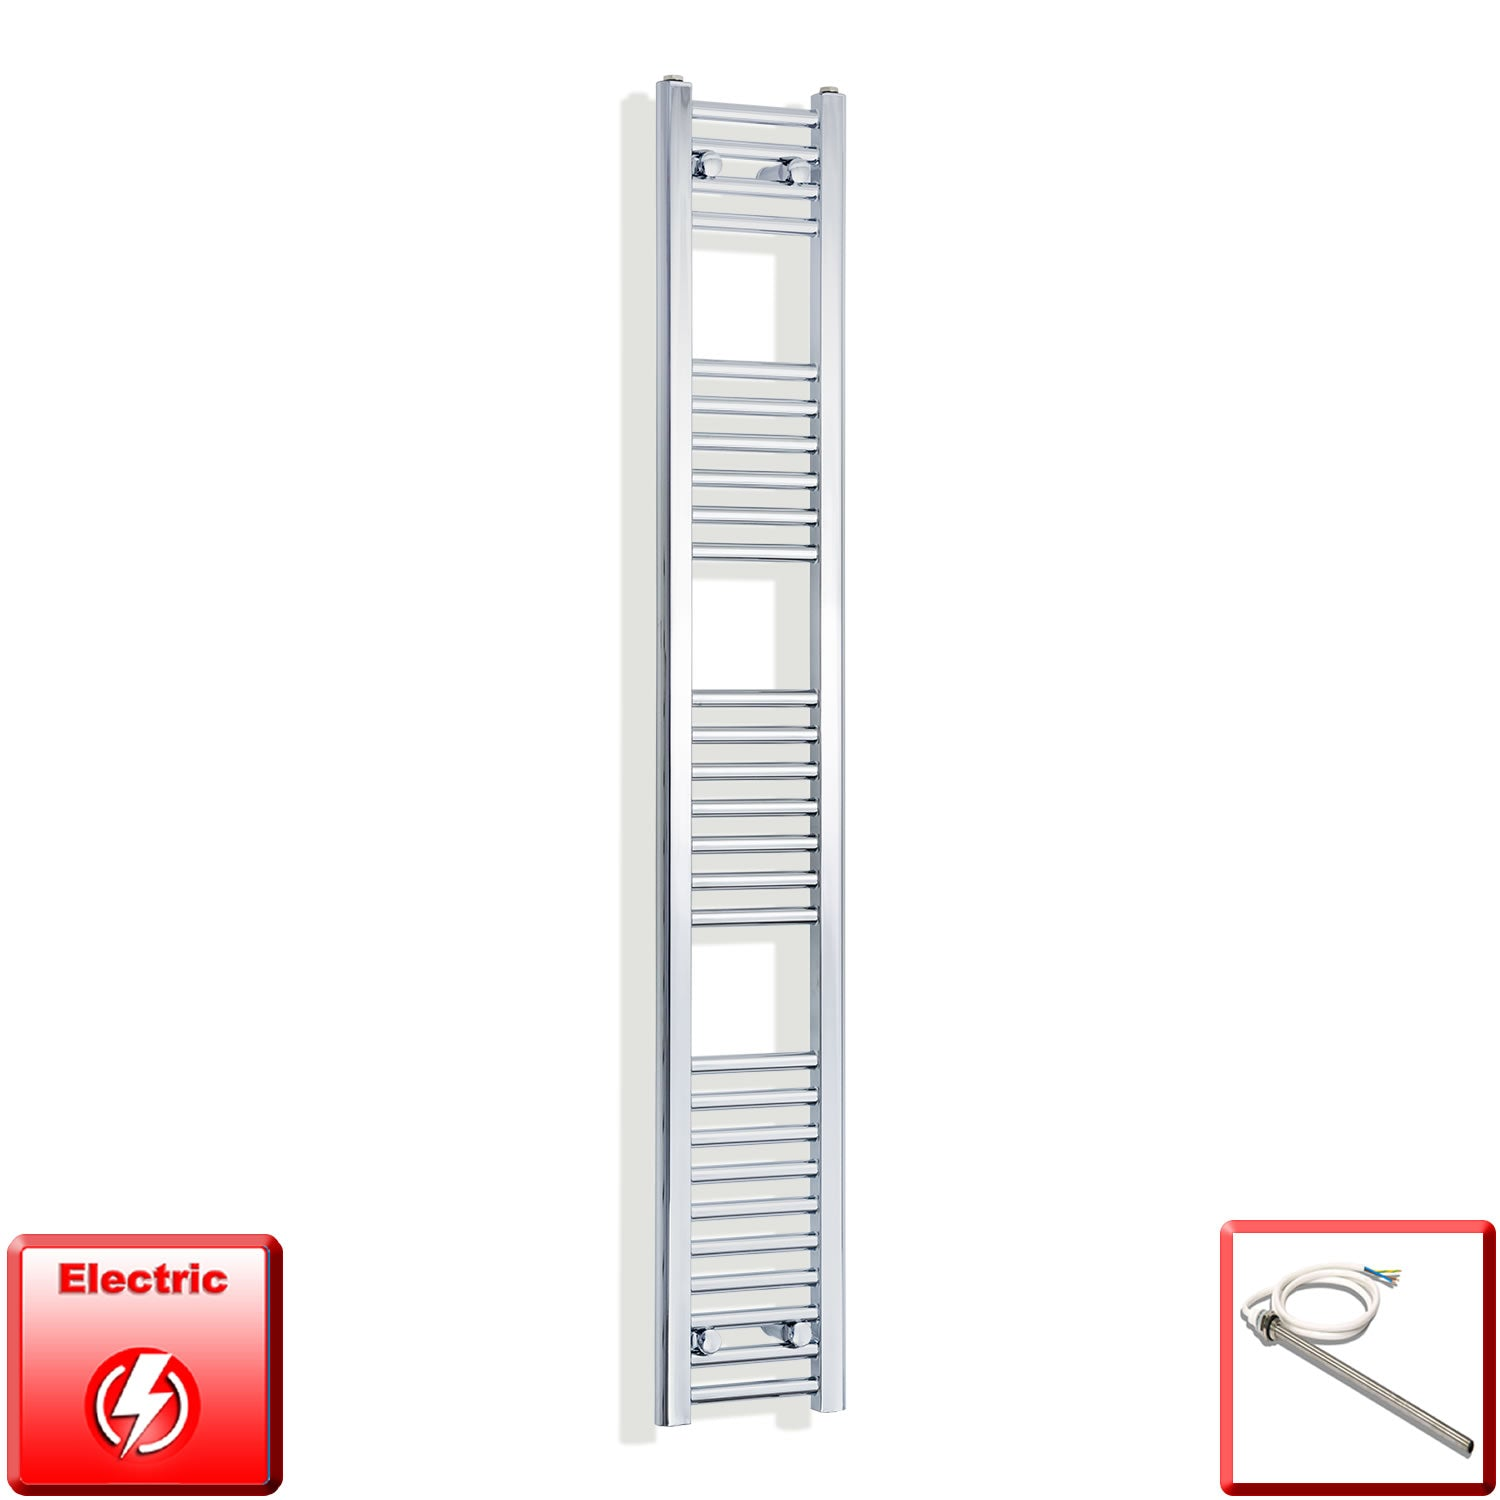 250mm Wide 1600mm High Pre-Filled Chrome Electric Towel Rail Radiator With Single Heat Element